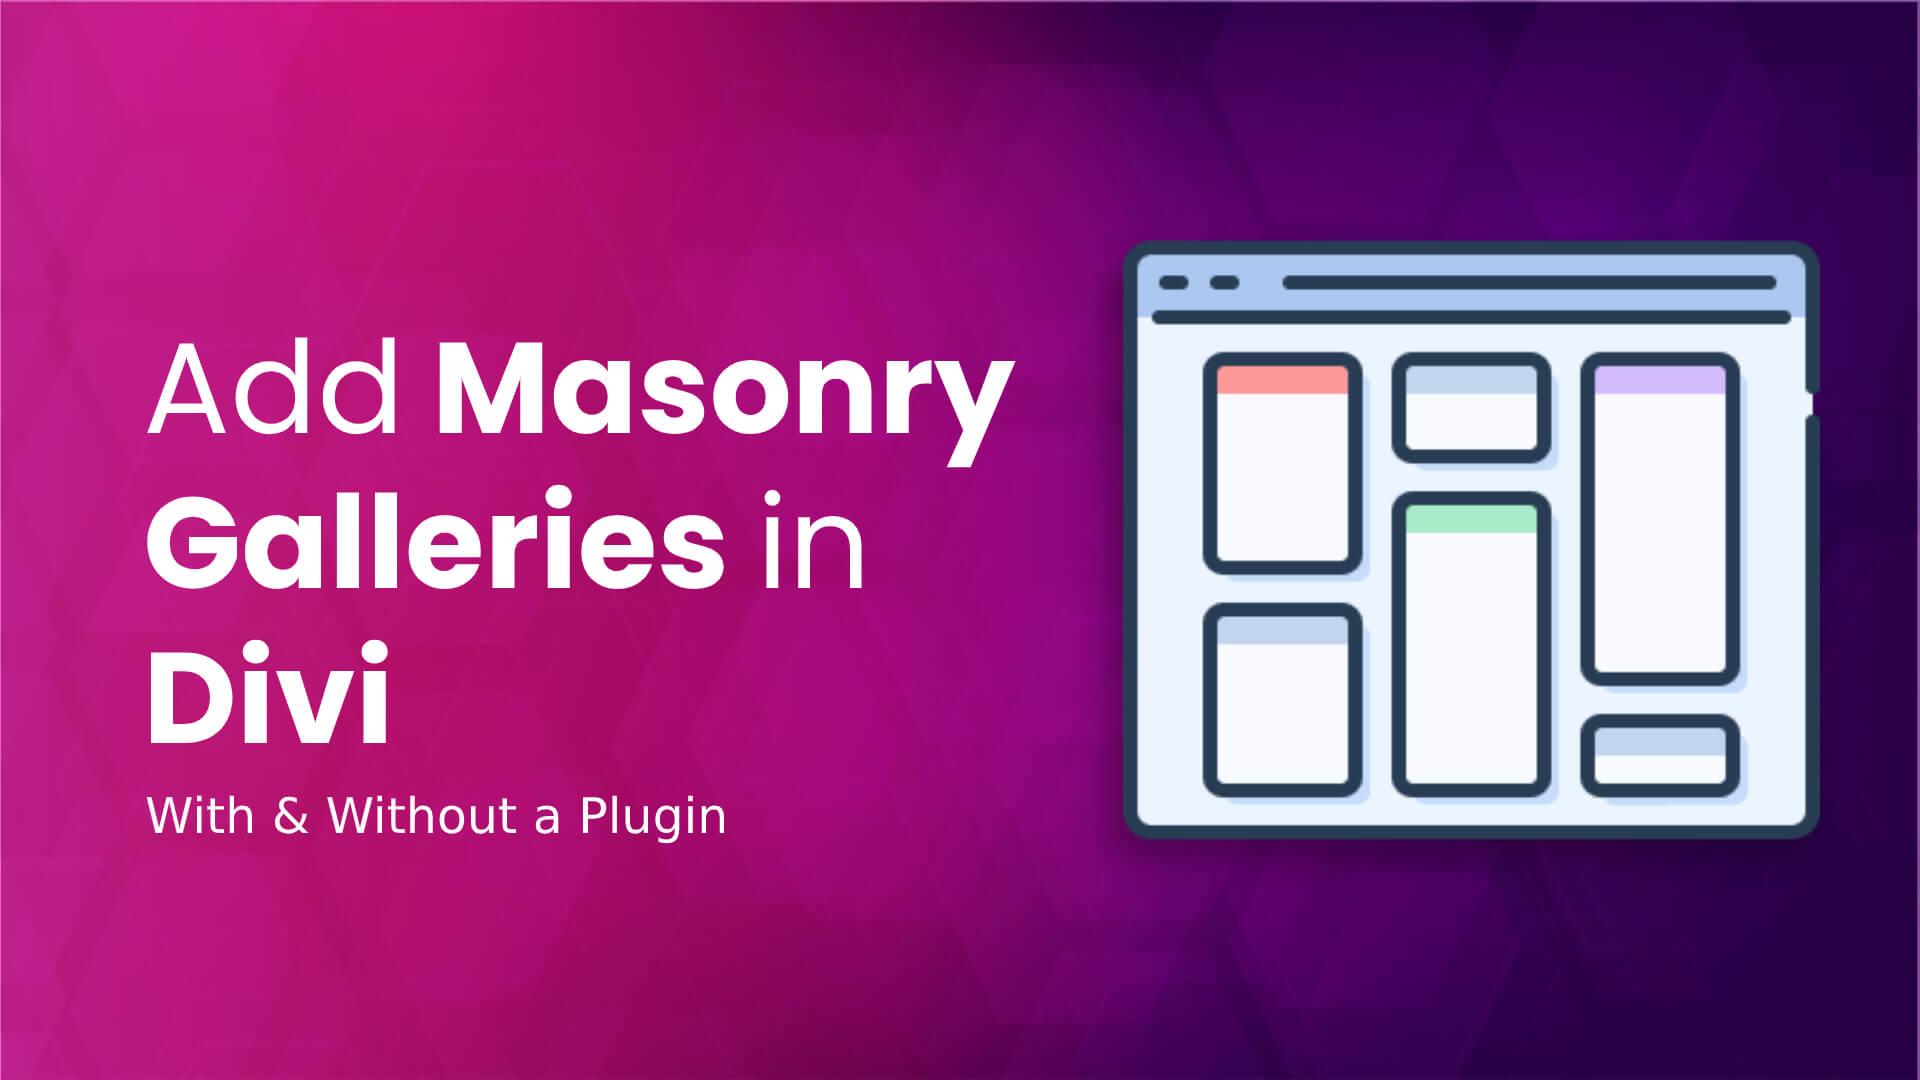 Masonry galleries in the Divi theme